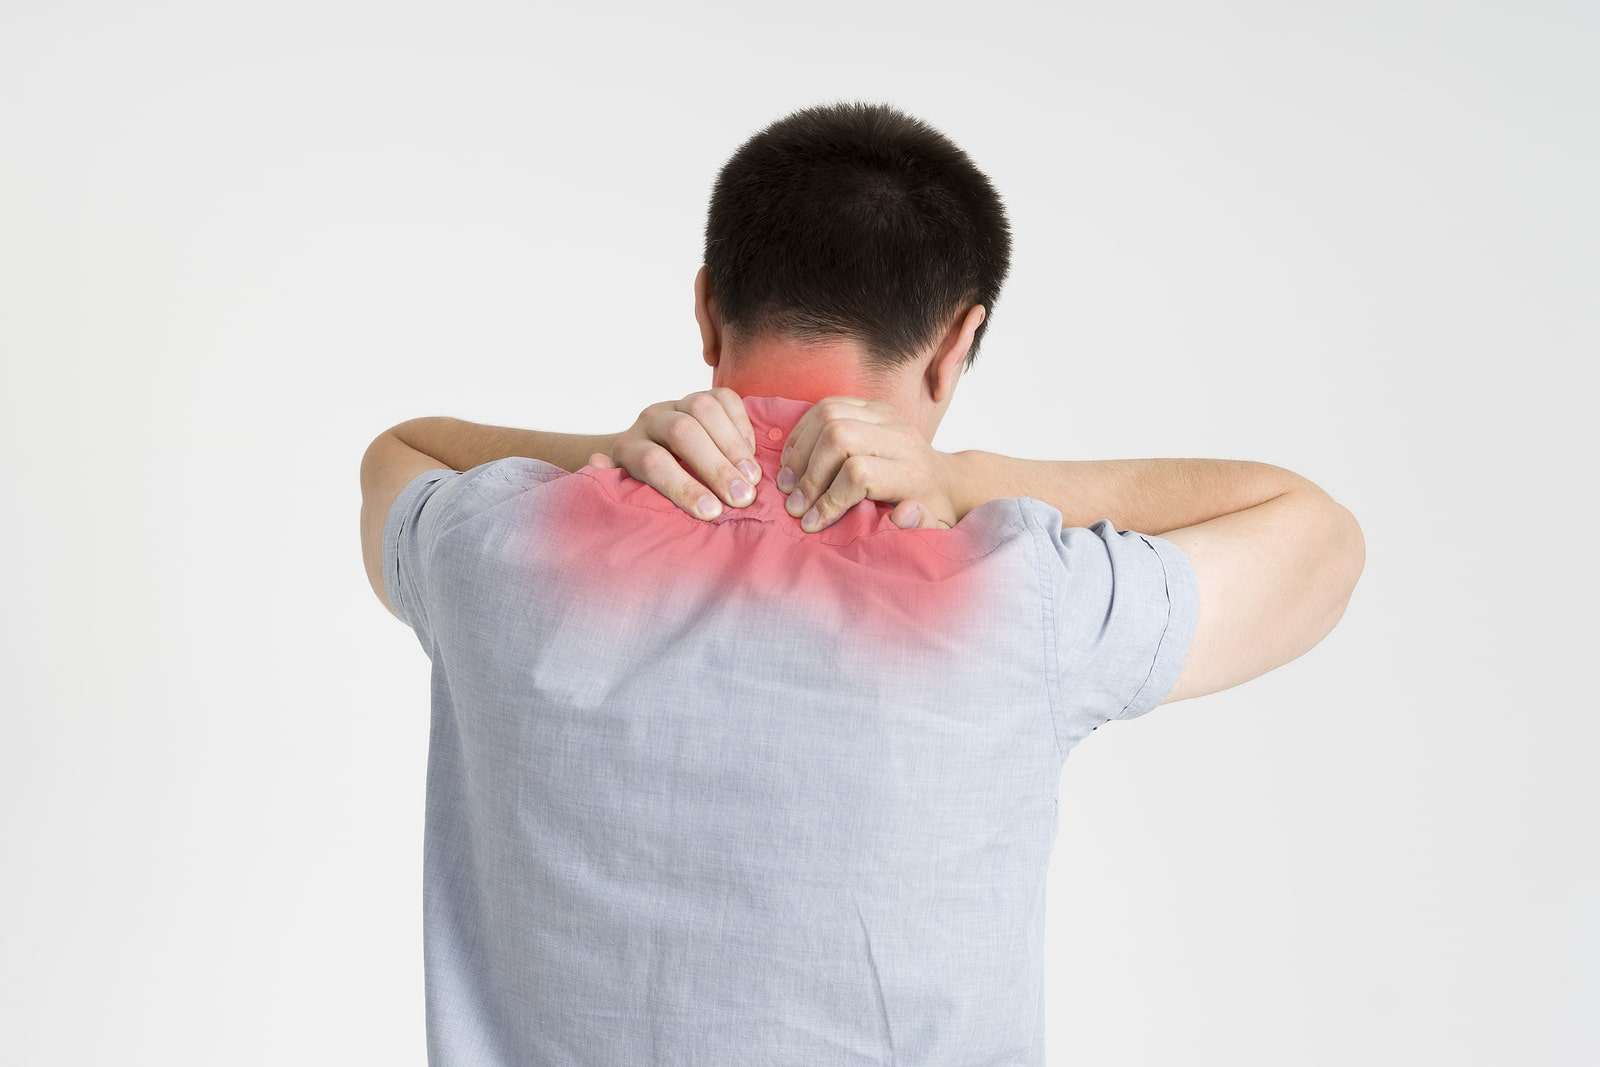 man-with-pain-in-upper-spine